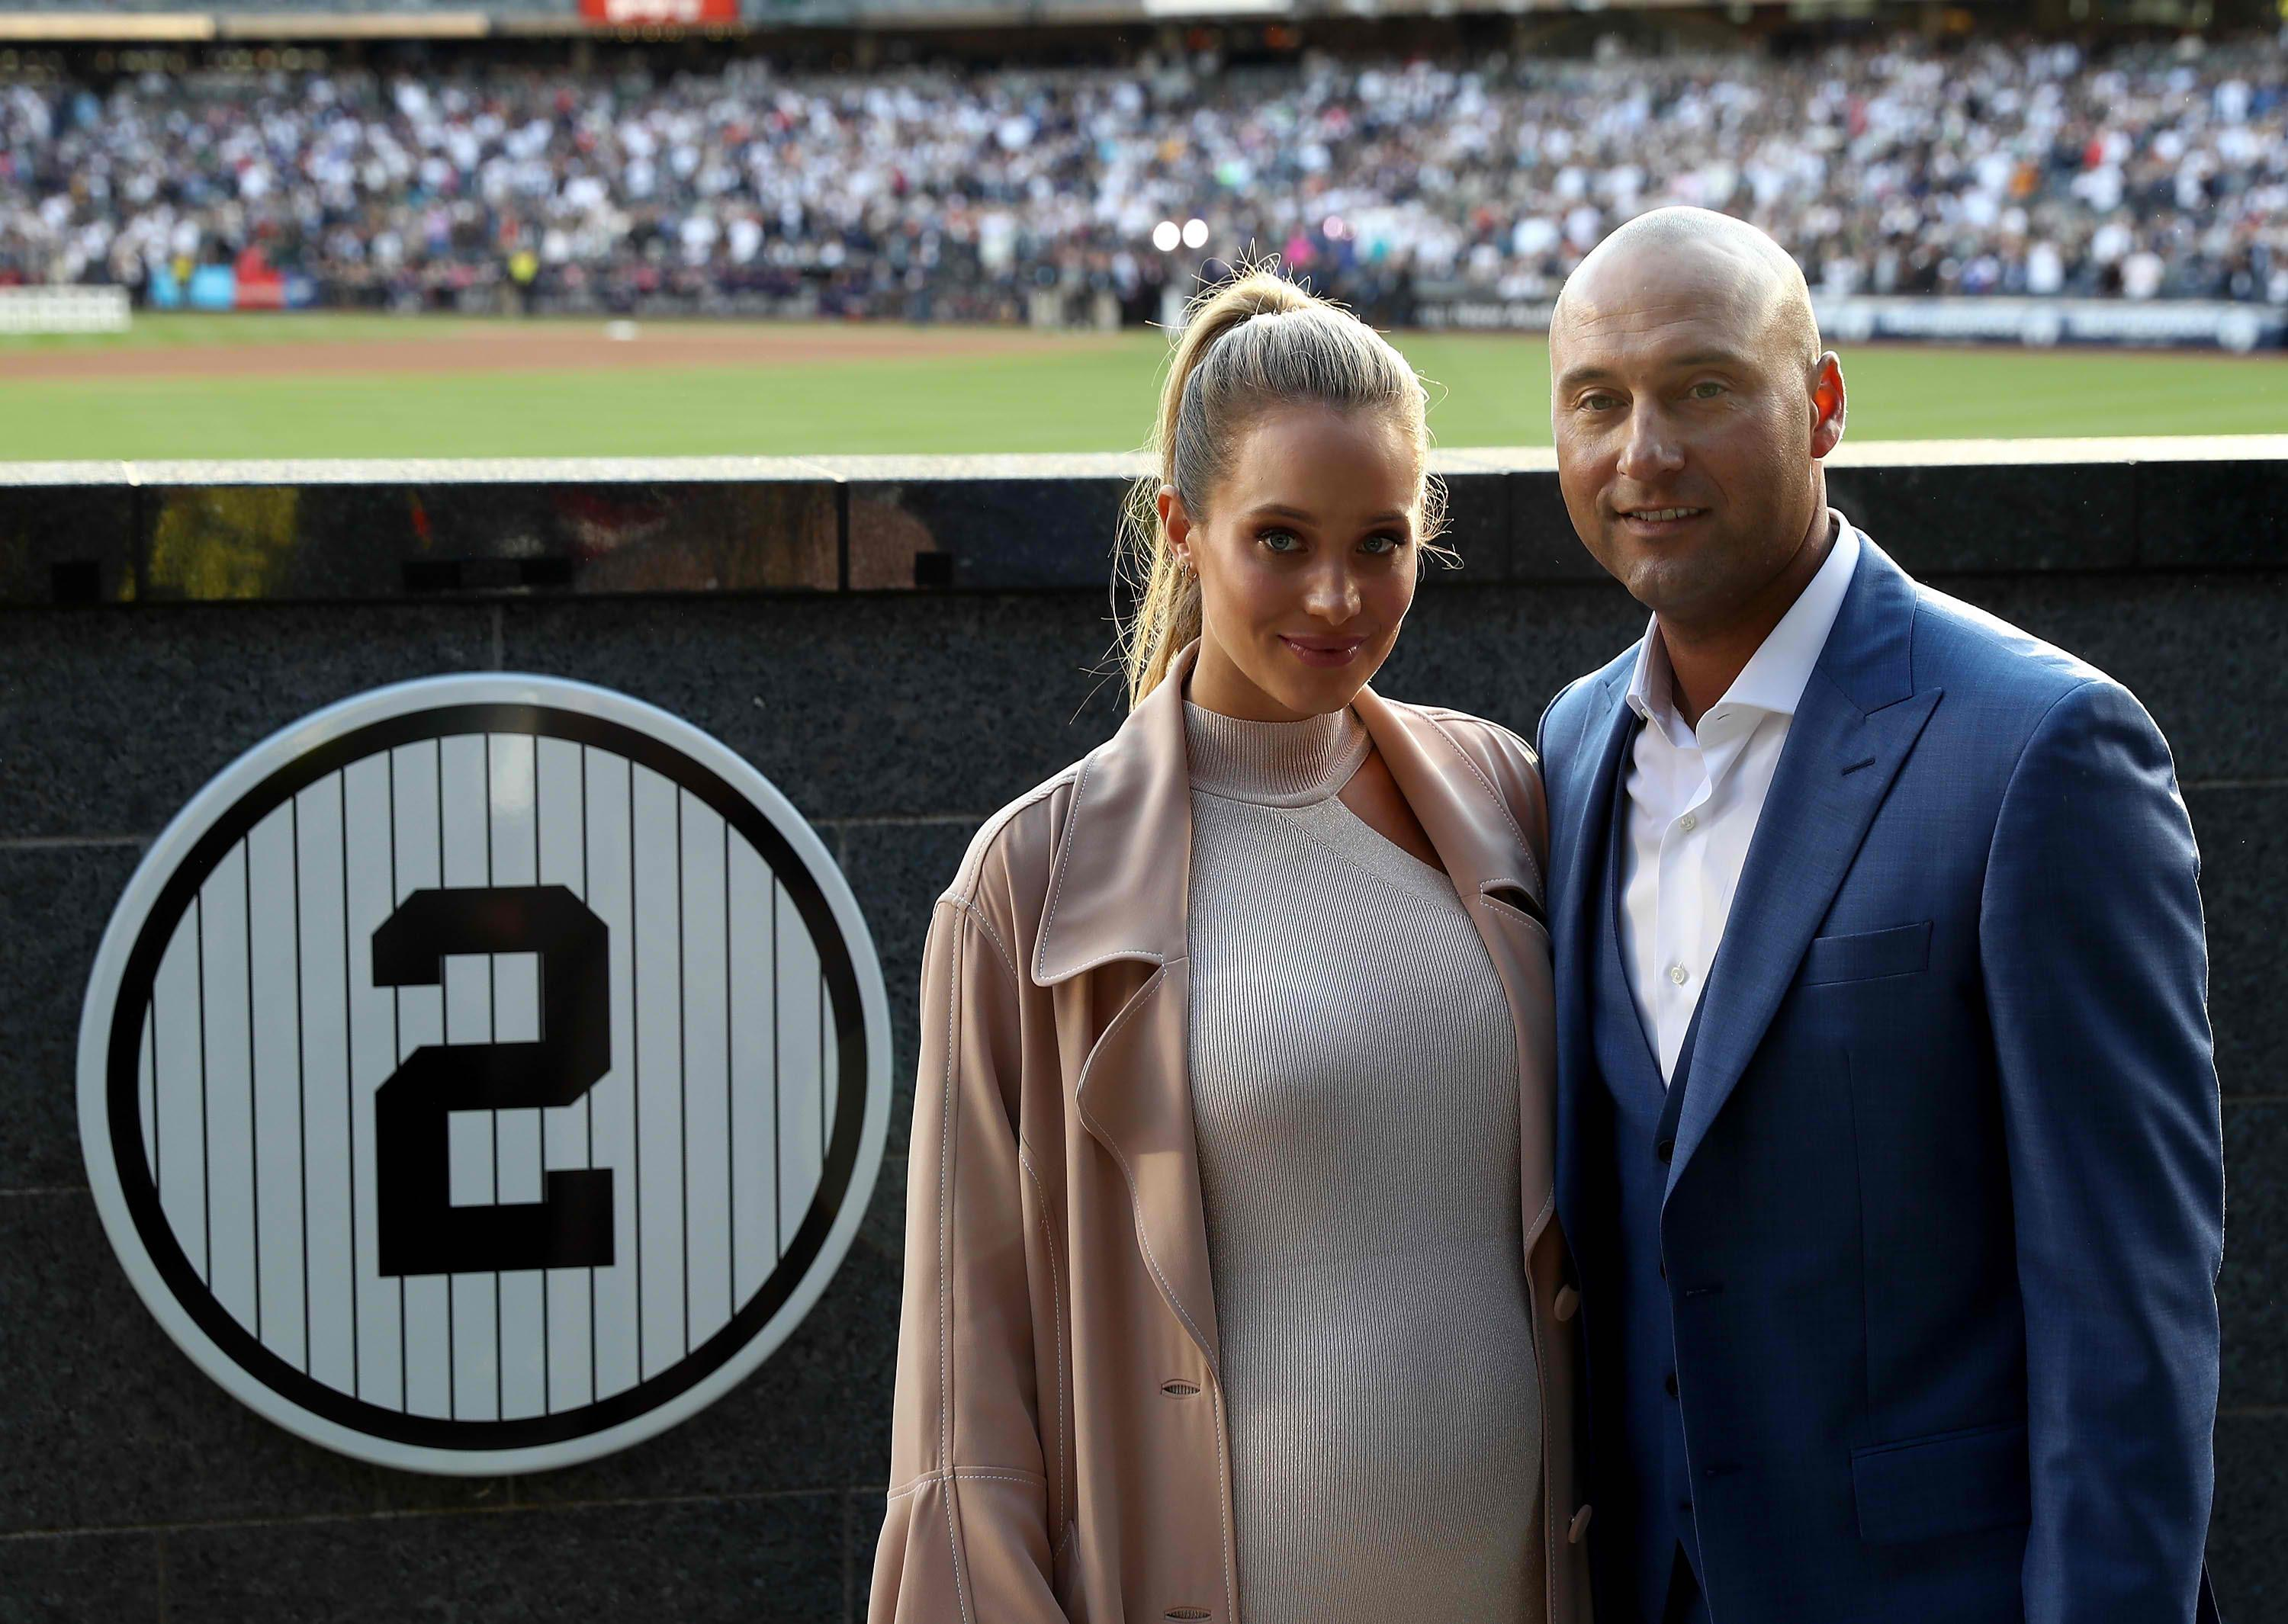 Derek and Hannah Jeter celebrate birth of first child, daughter Bella Raine